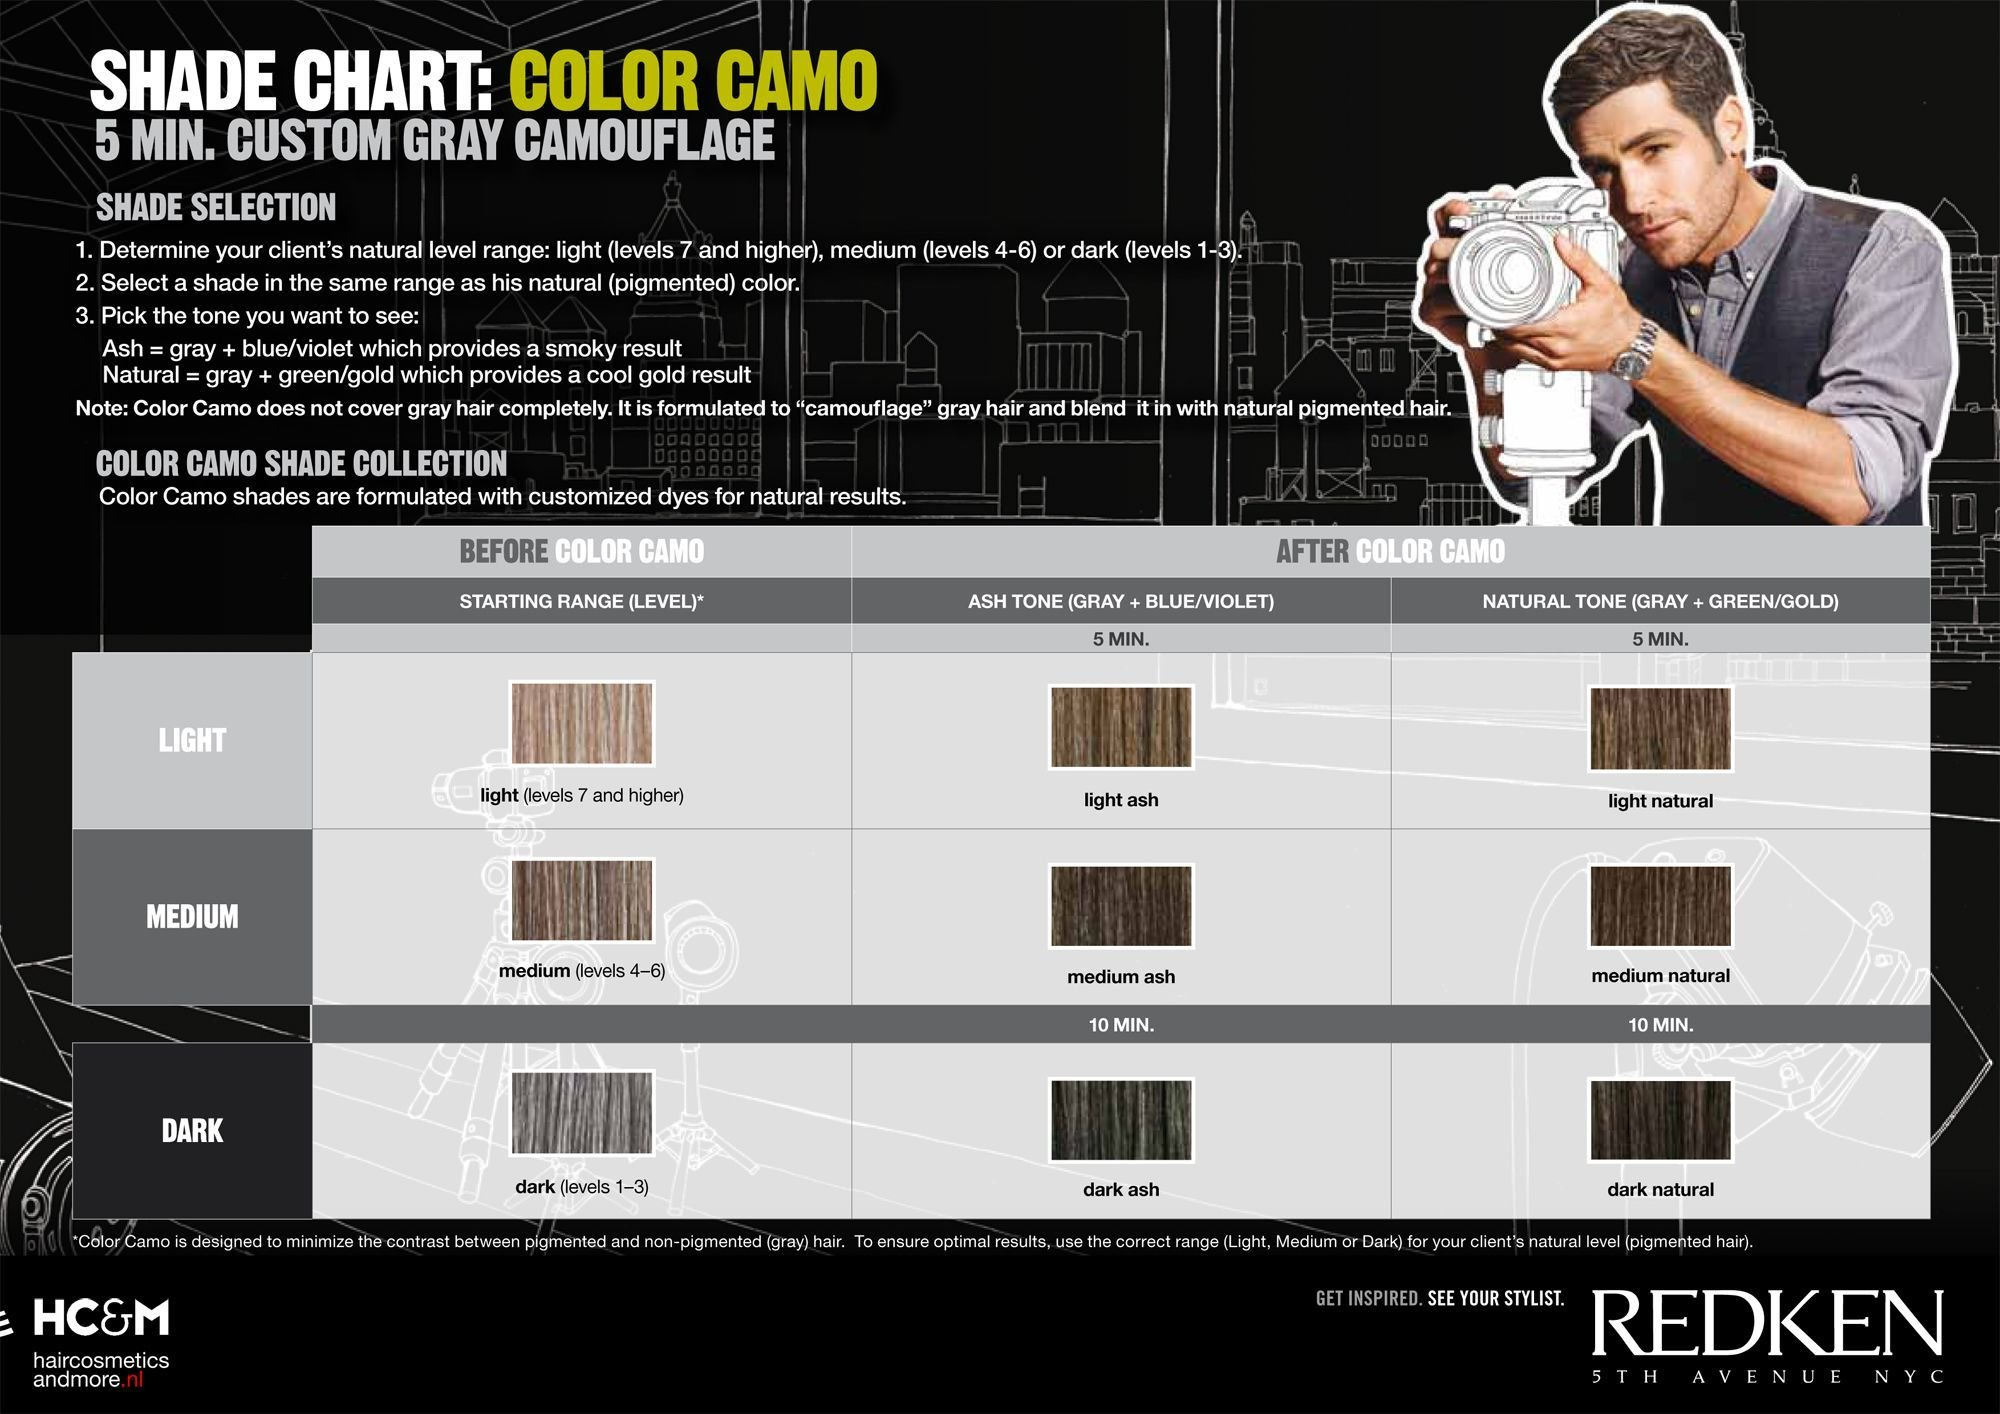 The Best Redken For Men Color Camo Shade Chart Hair In 2019 Pictures